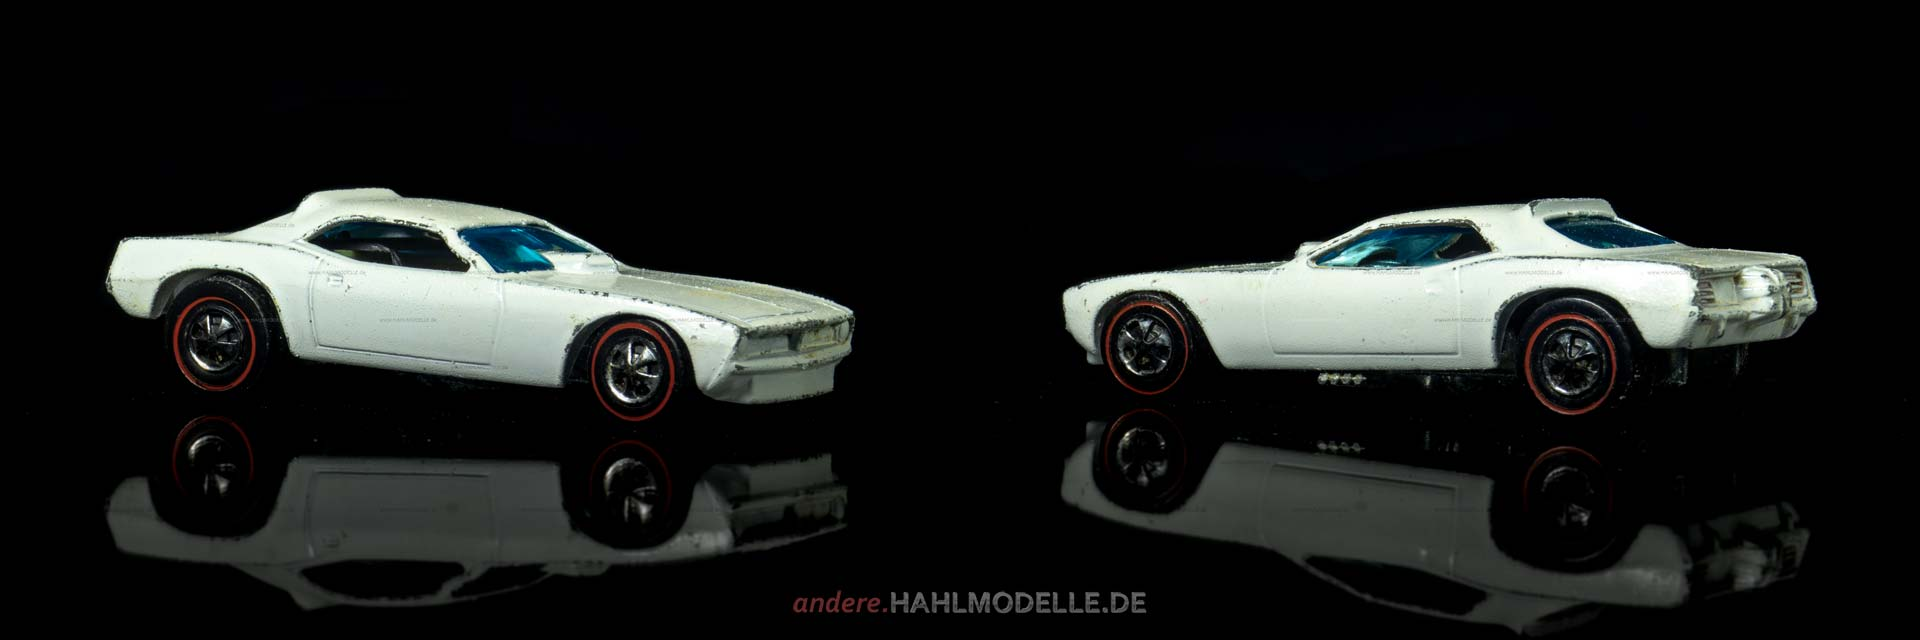 Plymouth Barracuda (3. Gen.) | Dragster | Mattel Inc. Hong Kong | Moongoose vs. Snake | 1:64 | www.andere.hahlmodelle.de